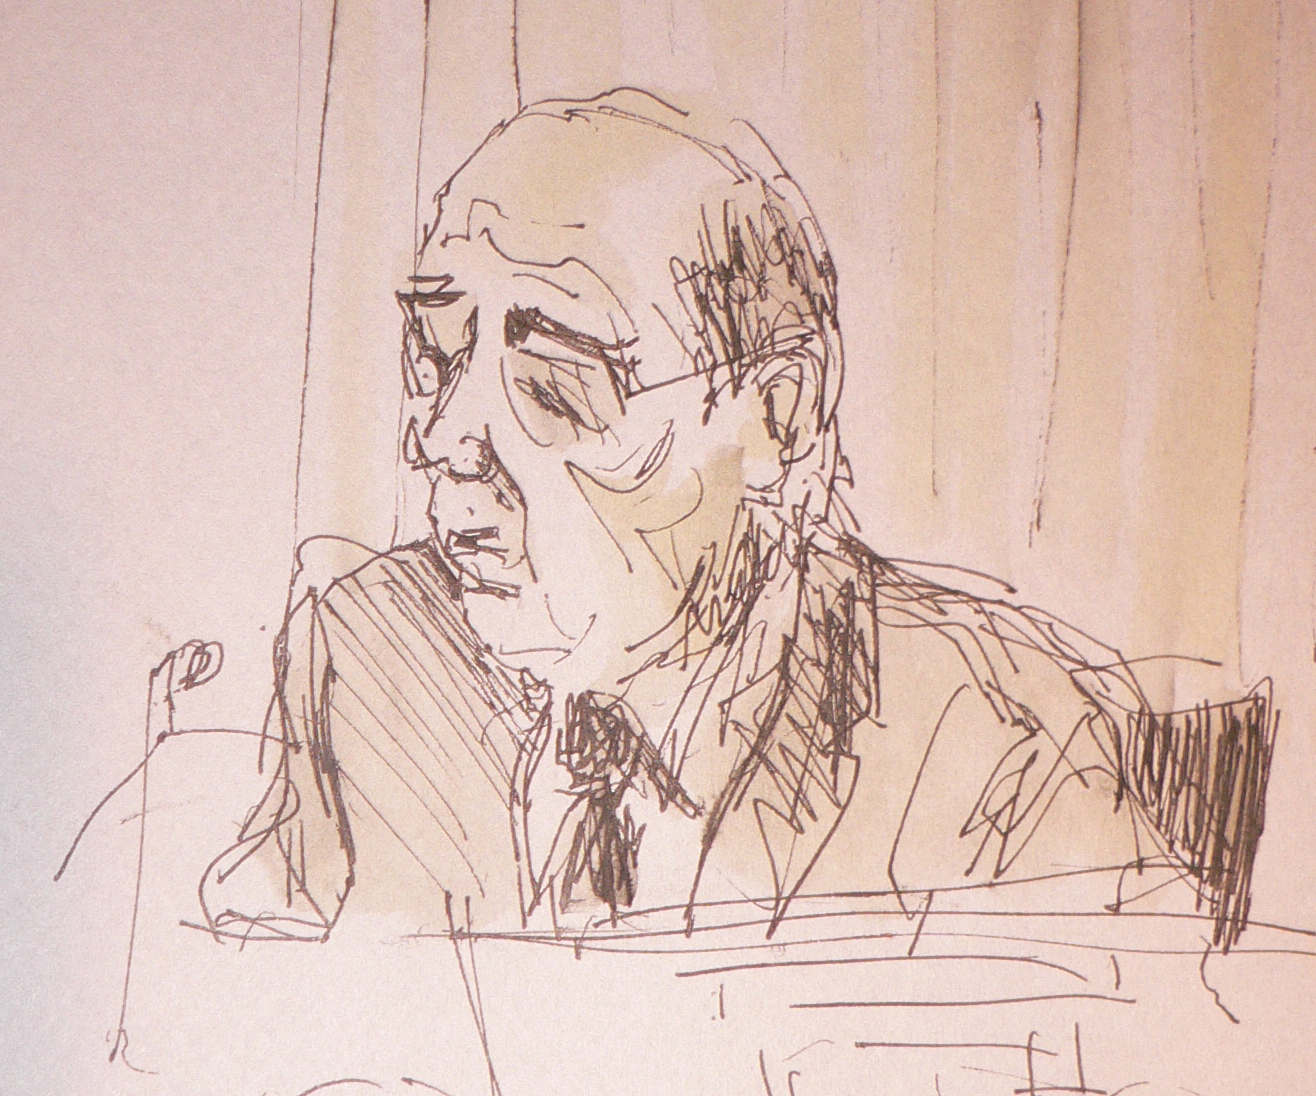 Justice Leveson